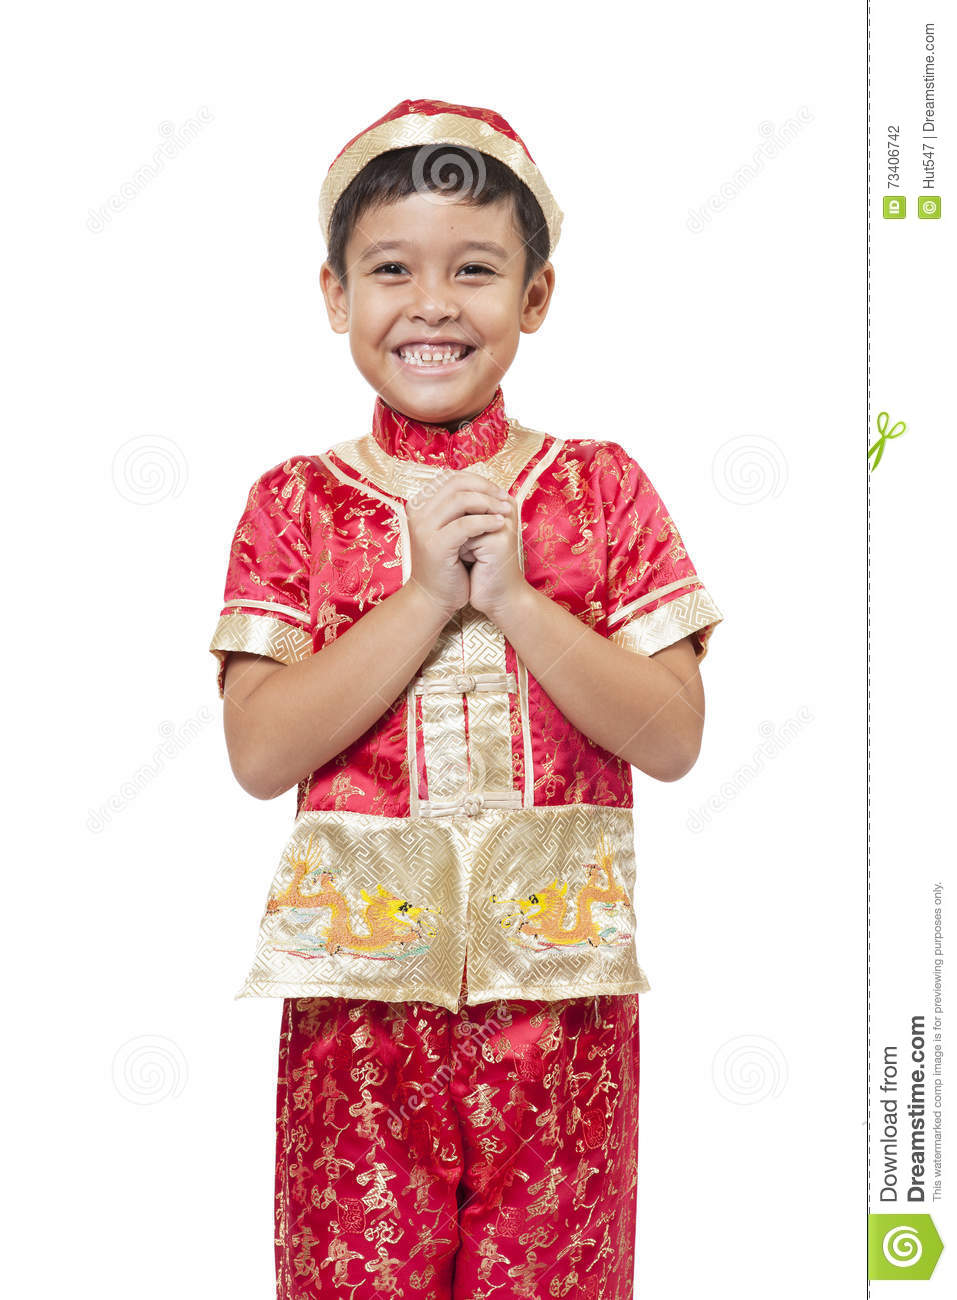 b1d0dbcc5 Young Asian Boy With Chinese Traditional Outfit Cheongsam Or Tan ...